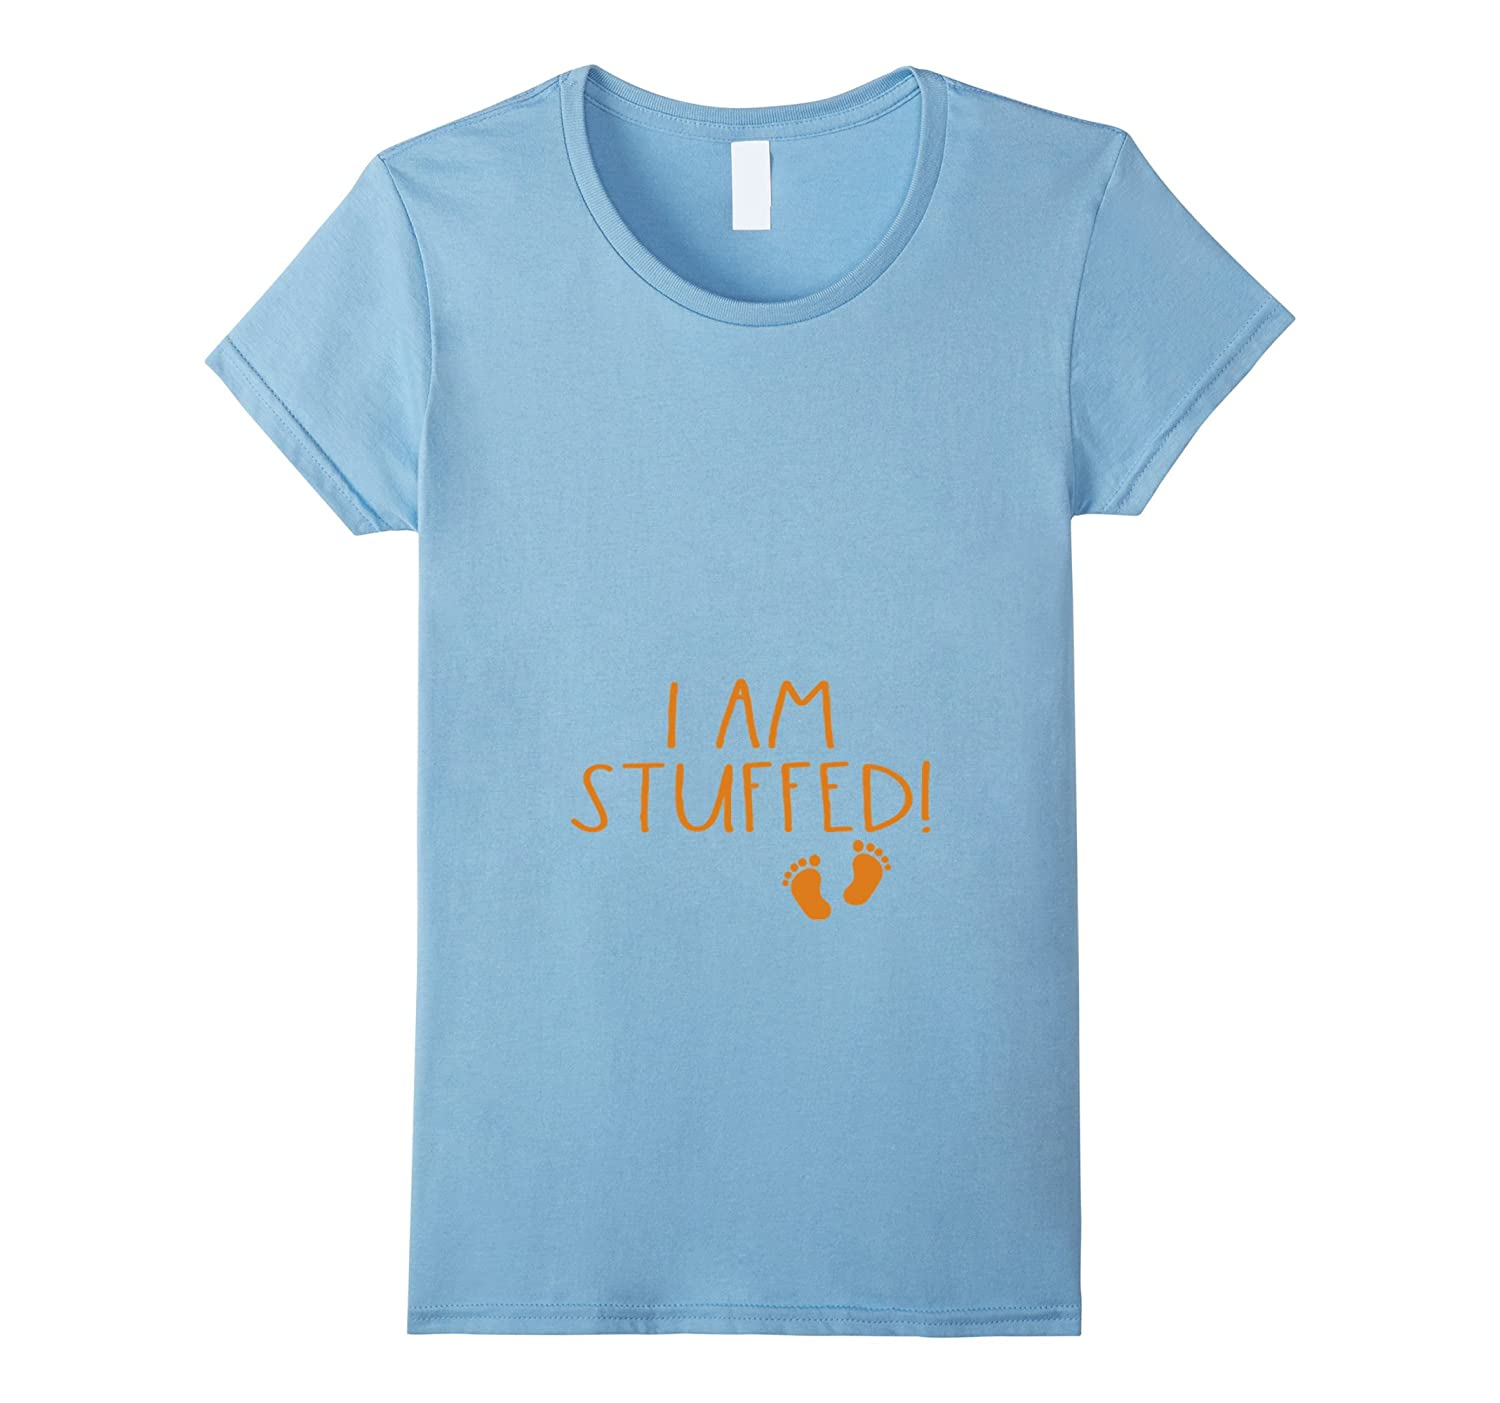 c0f7c1bb Womens Cute Thanksgiving Maternity Shirt - I Am Stuffed!-ANZ ...